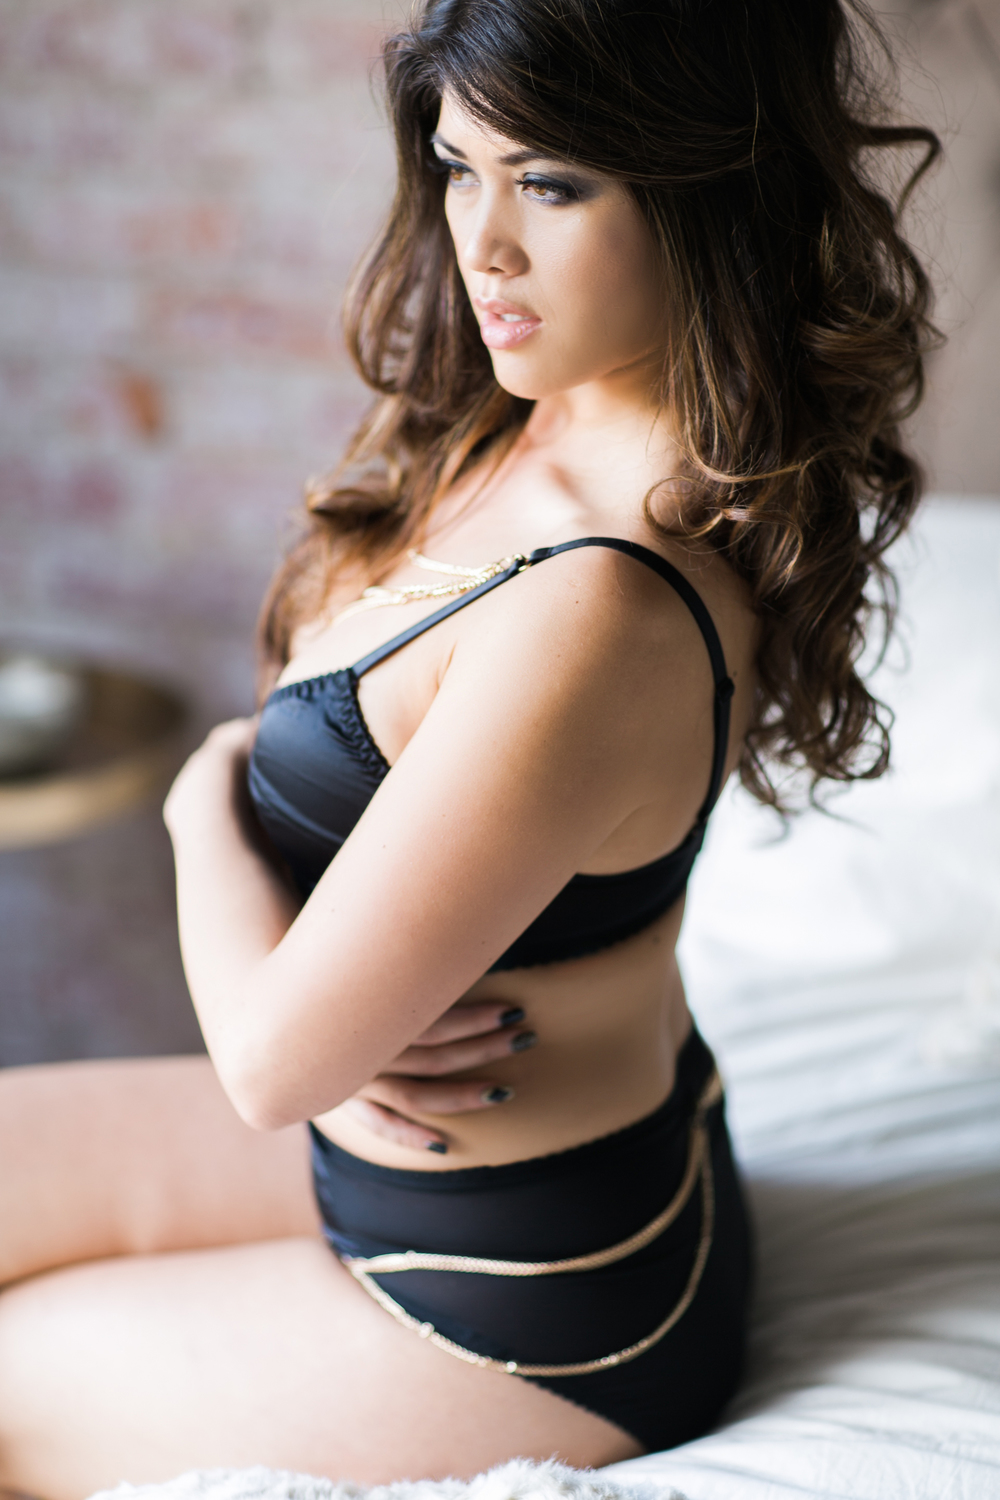 san francisco bay area boudoir photography modern Love-34.jpg